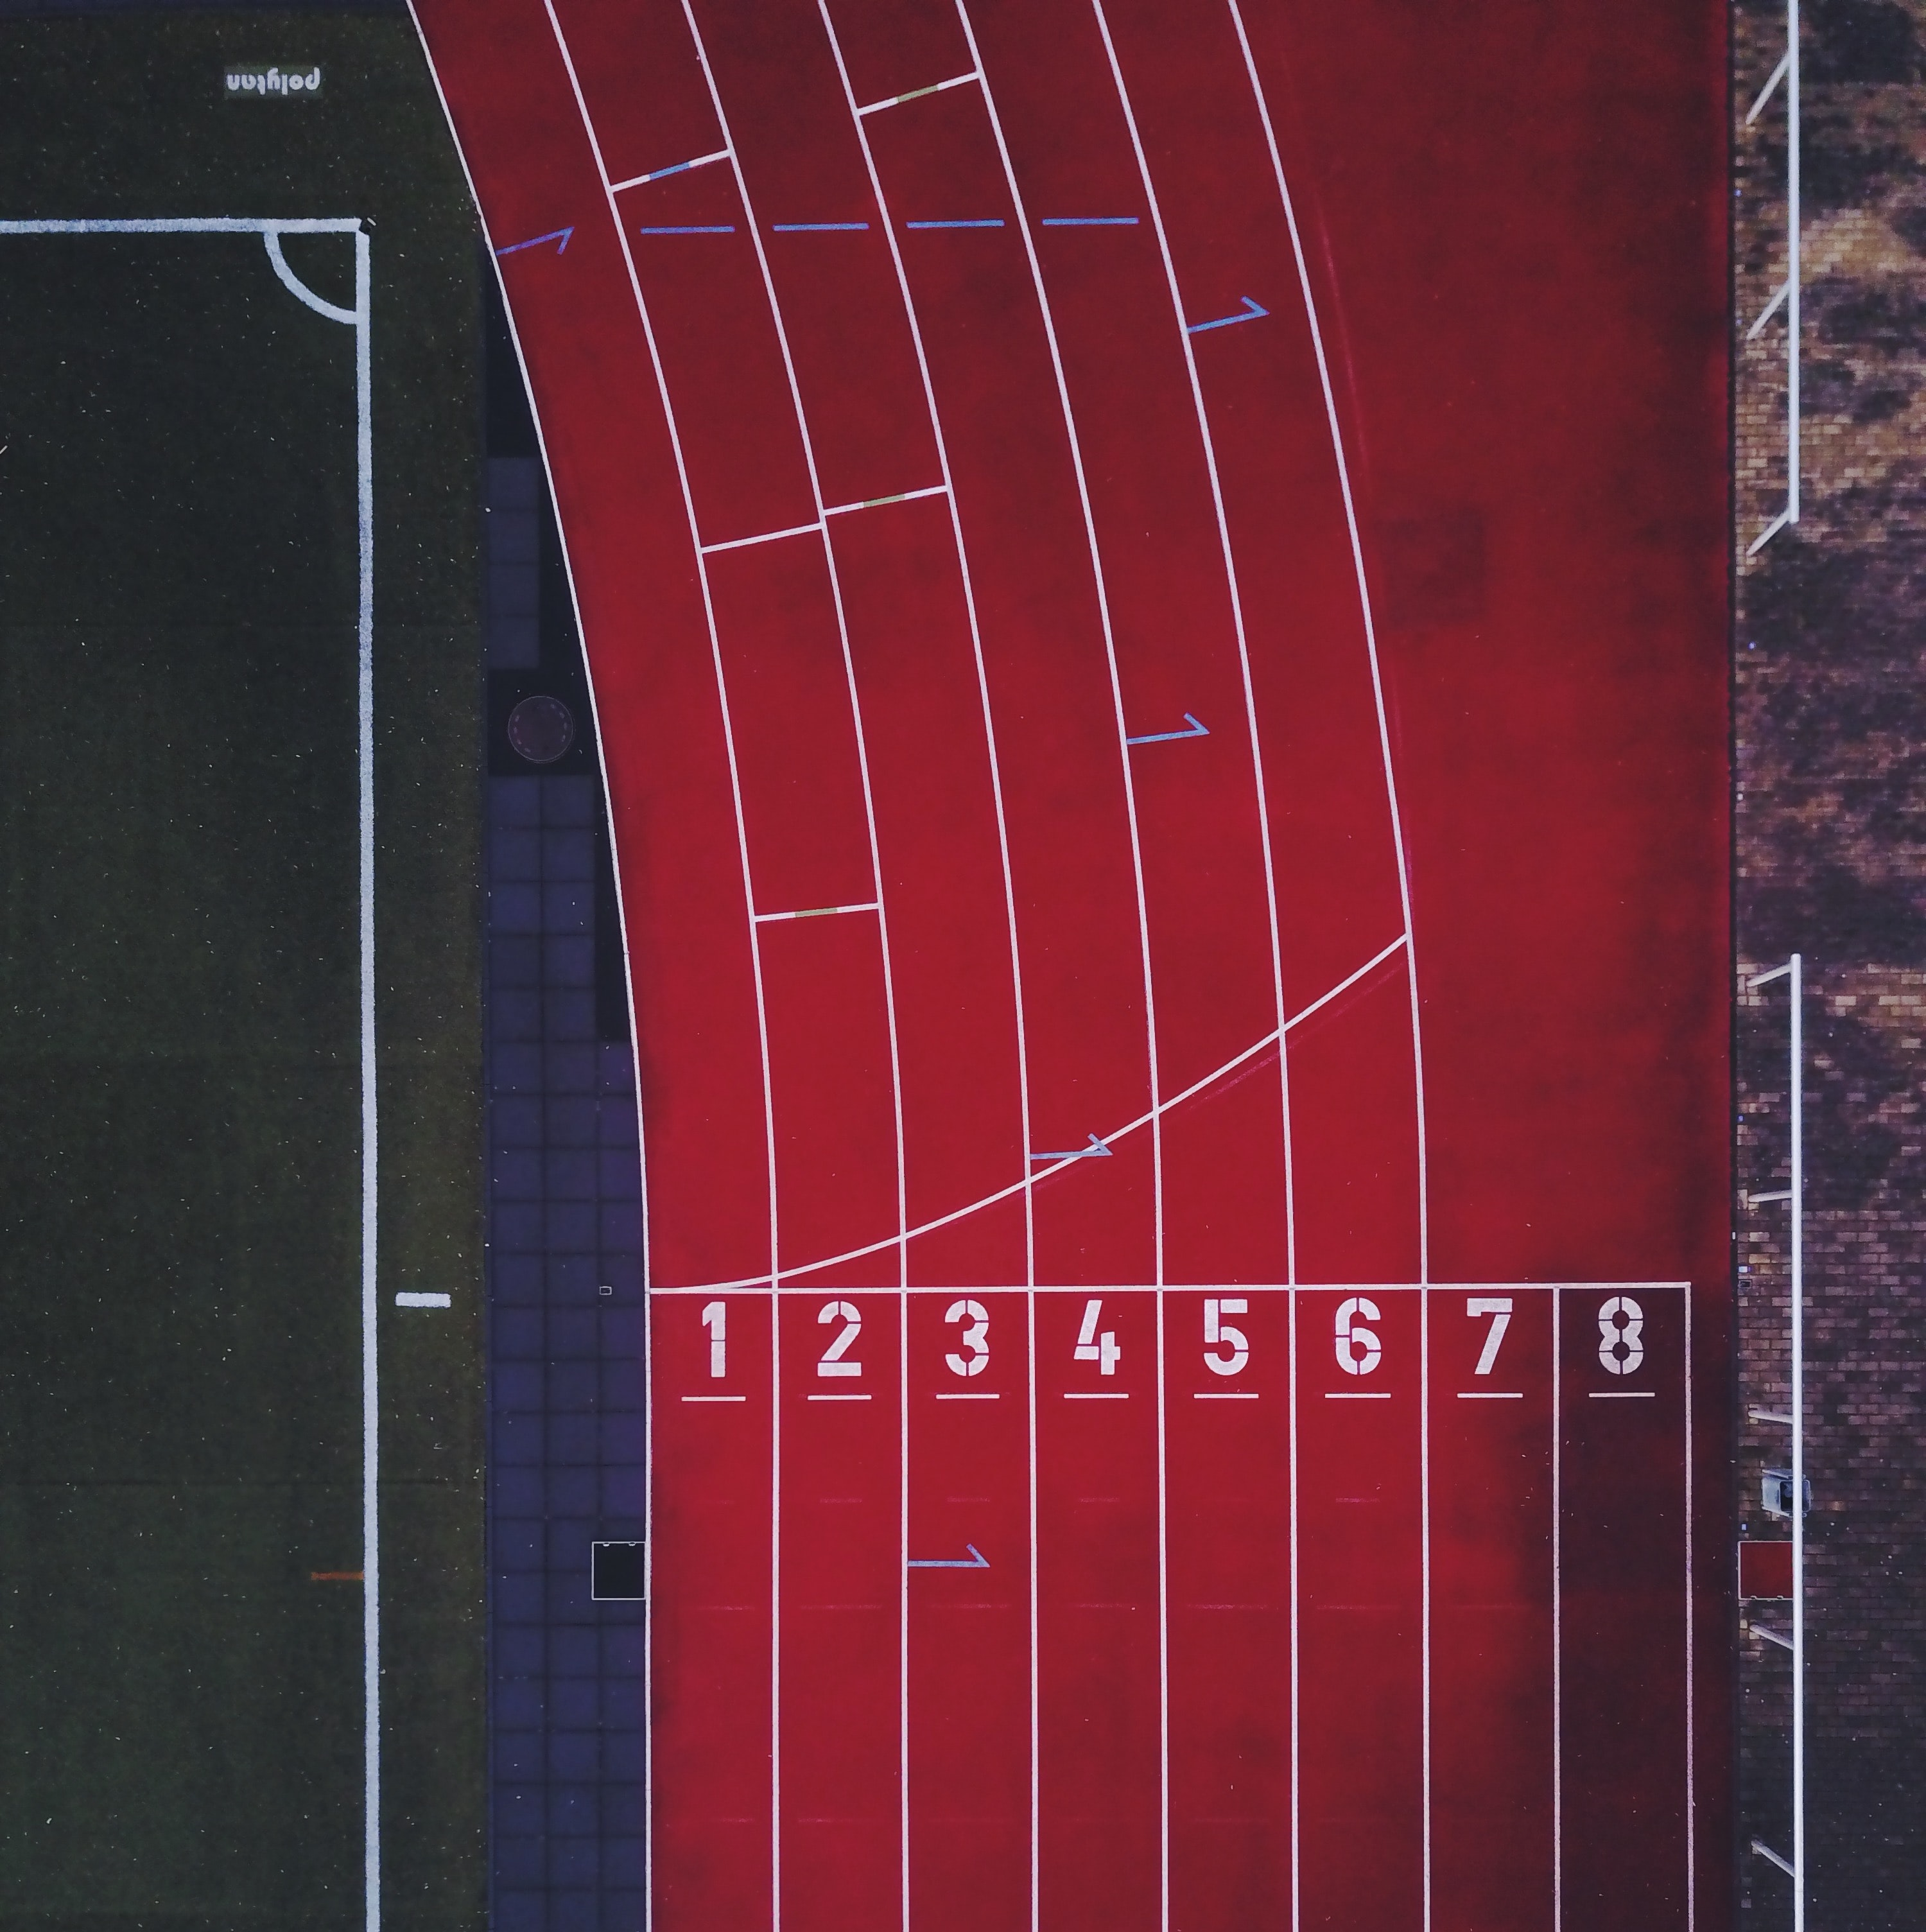 A drone shot of a running track in a stadium in Berlin